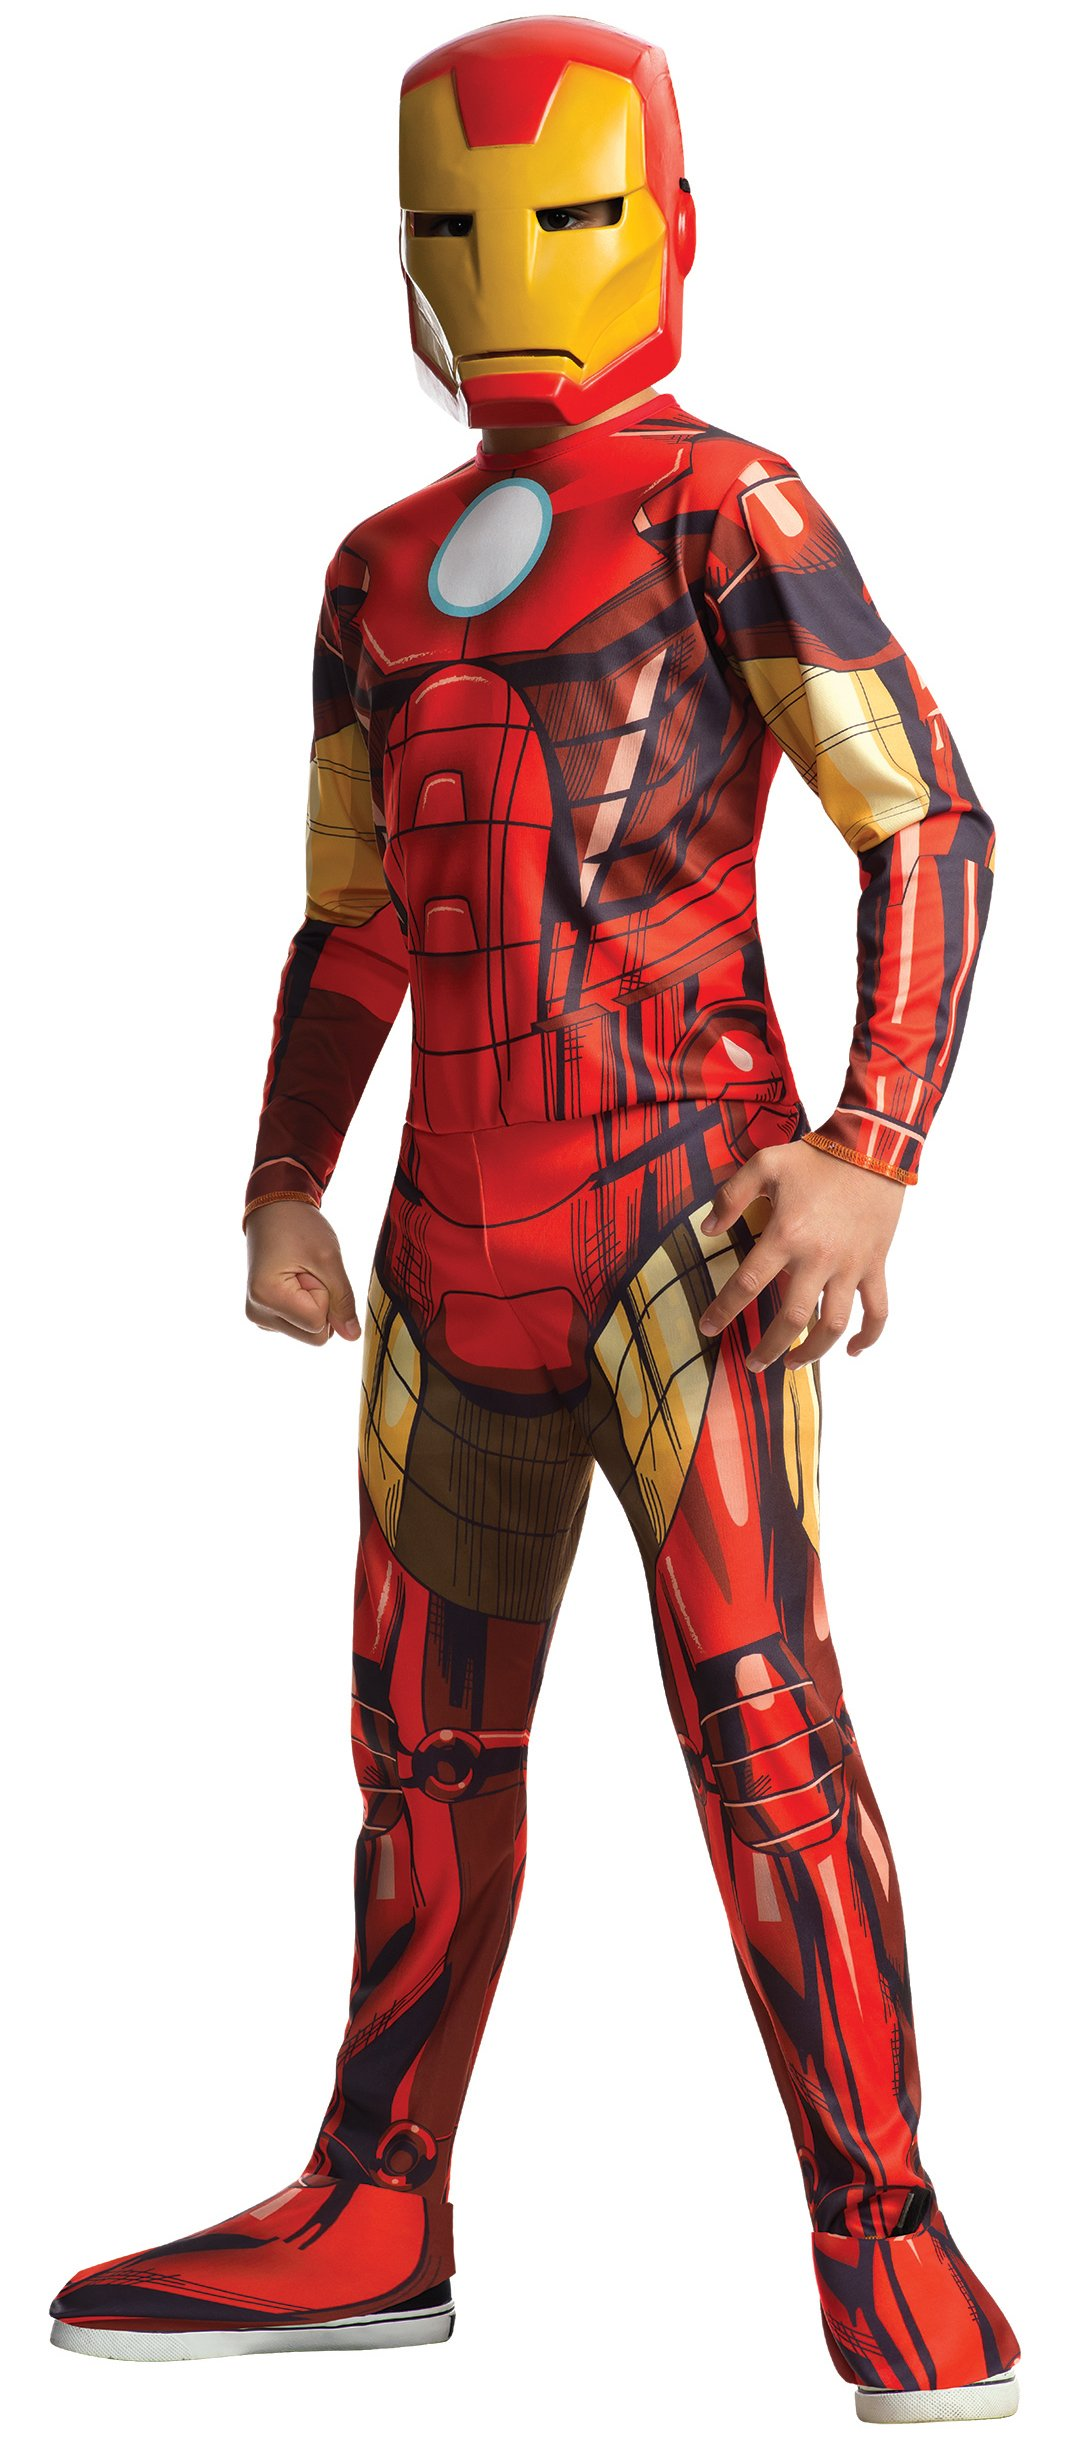 Rubies Marvel Universe Classic Collection Avengers Assemble Iron Man Costume, Child Small